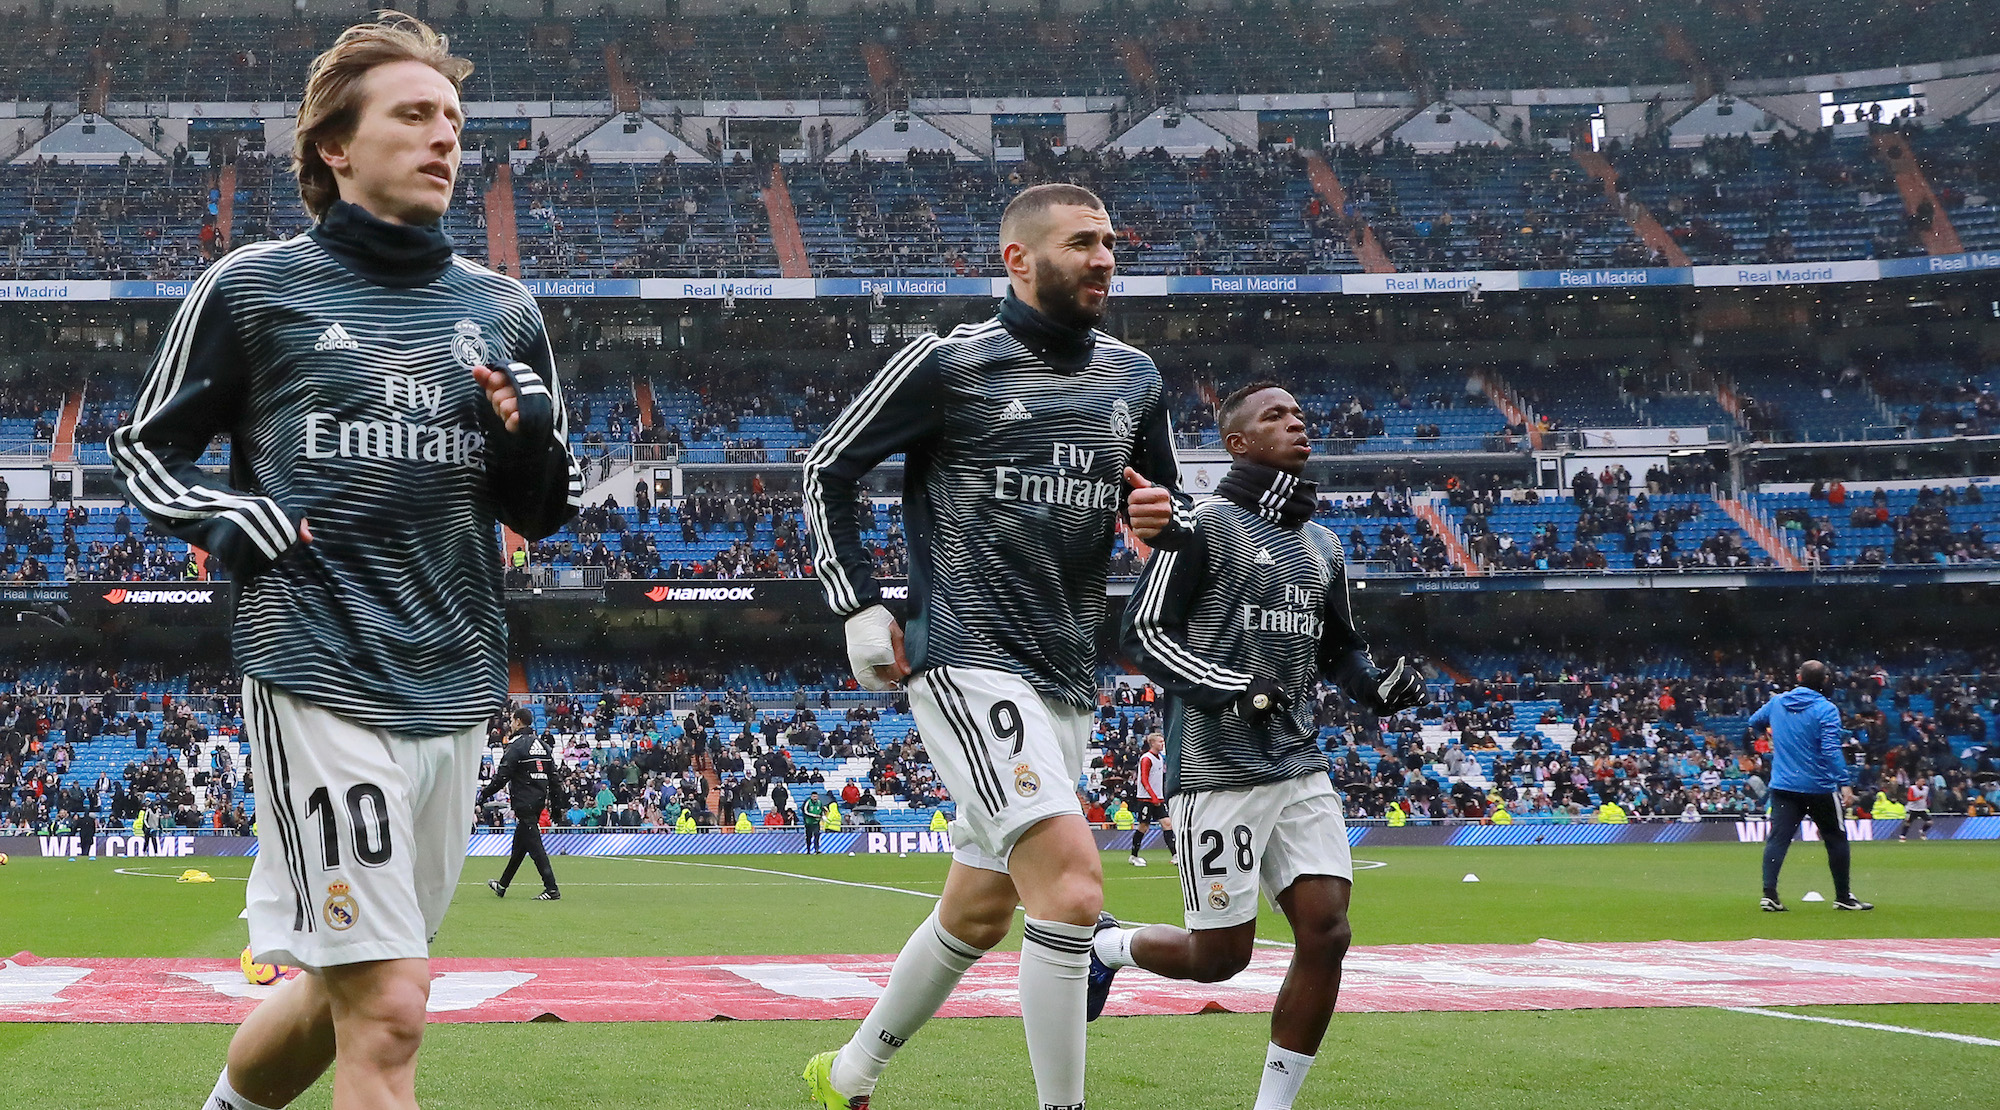 Luka Modric, Karim Benzema and Vinicius Junior of Real Madrid leave the pitch following a warm up prior to the La Liga match between Real Madrid CF and Sevilla FC at Estadio Santiago Bernabeu on January 19, 2019 in Madrid, Spain. (Photo by Gonzalo Arroyo Moreno/Getty Images)